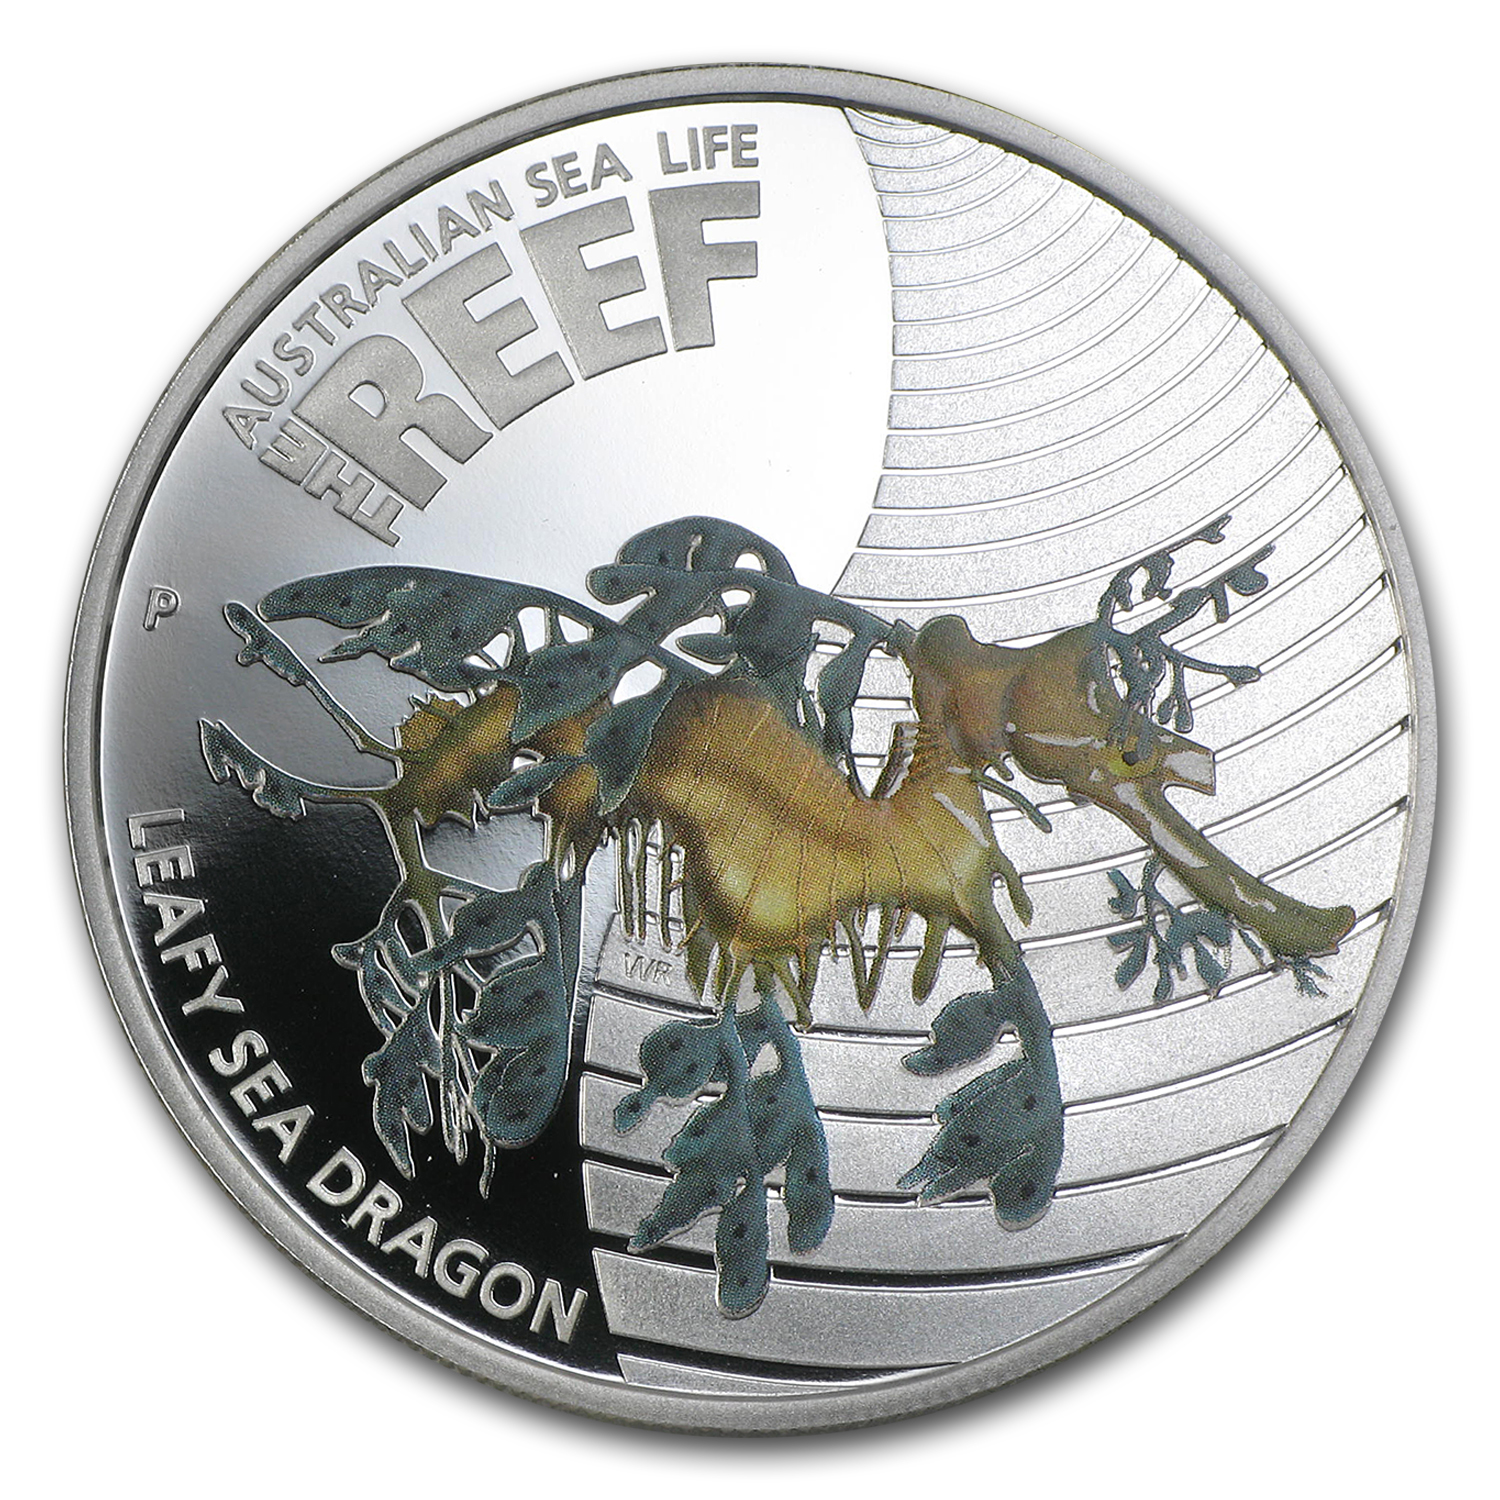 2009 1/2 oz Proof Silver Leafy Sea Dragon - Sea Life I Series